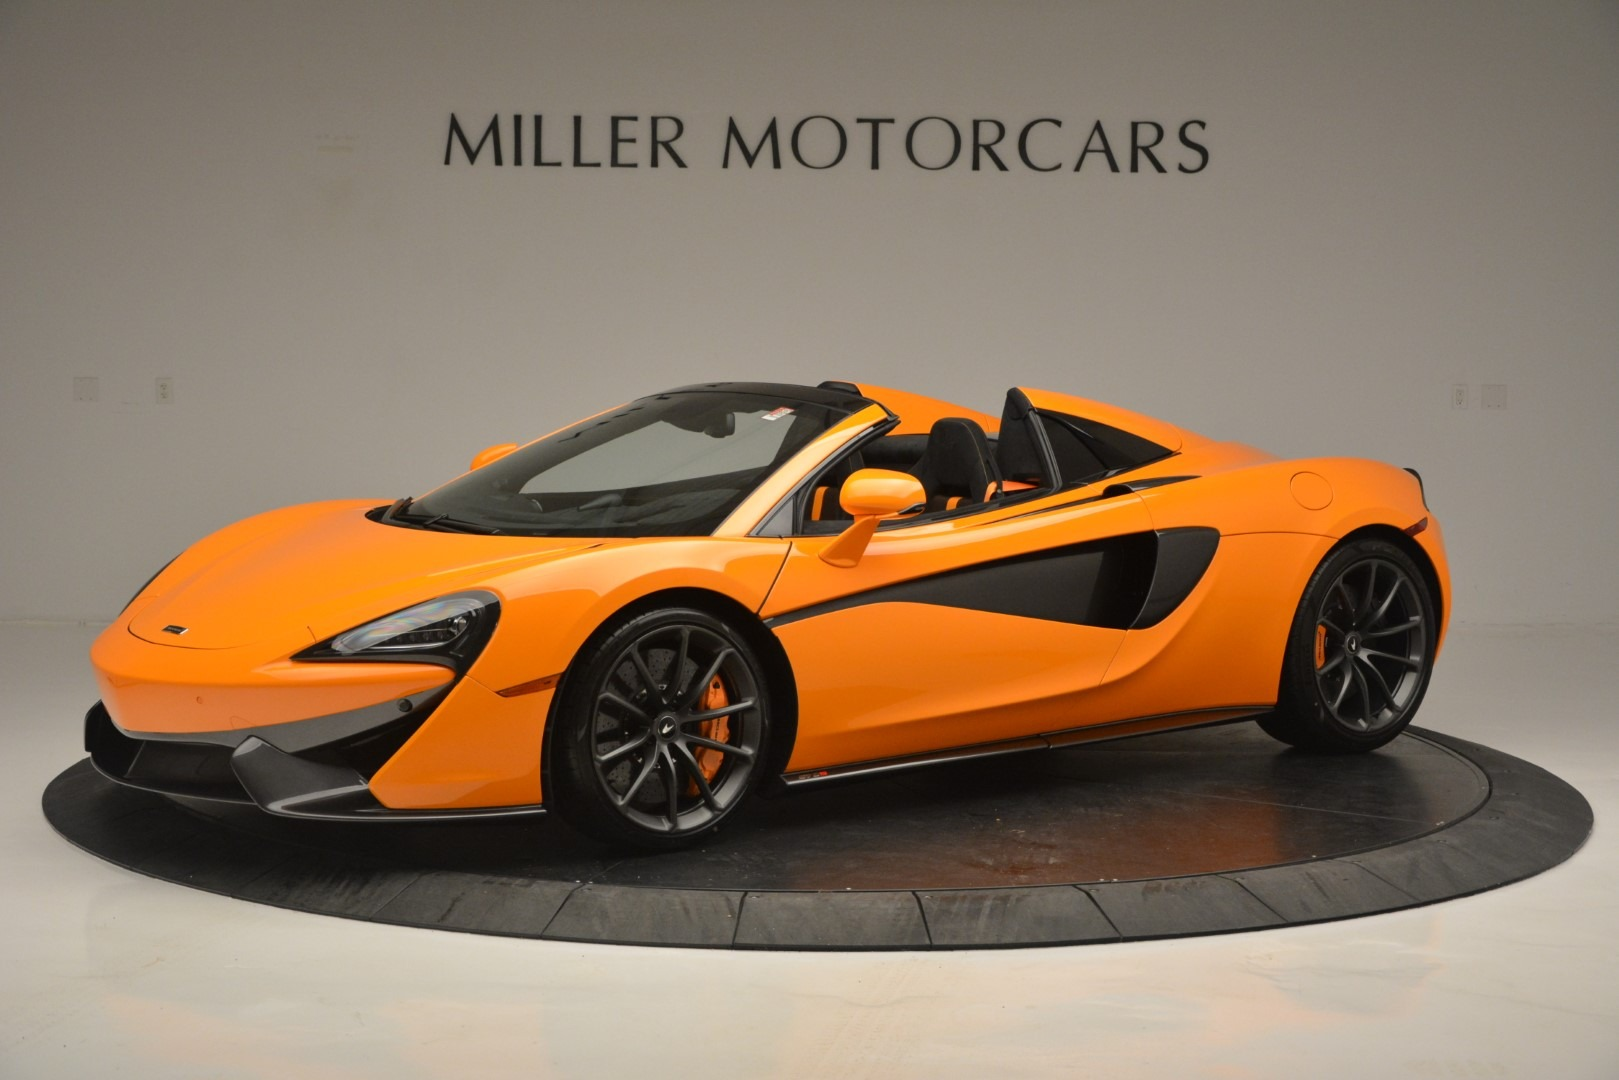 Used 2019 McLaren 570S Spider for sale $186,900 at Rolls-Royce Motor Cars Greenwich in Greenwich CT 06830 1